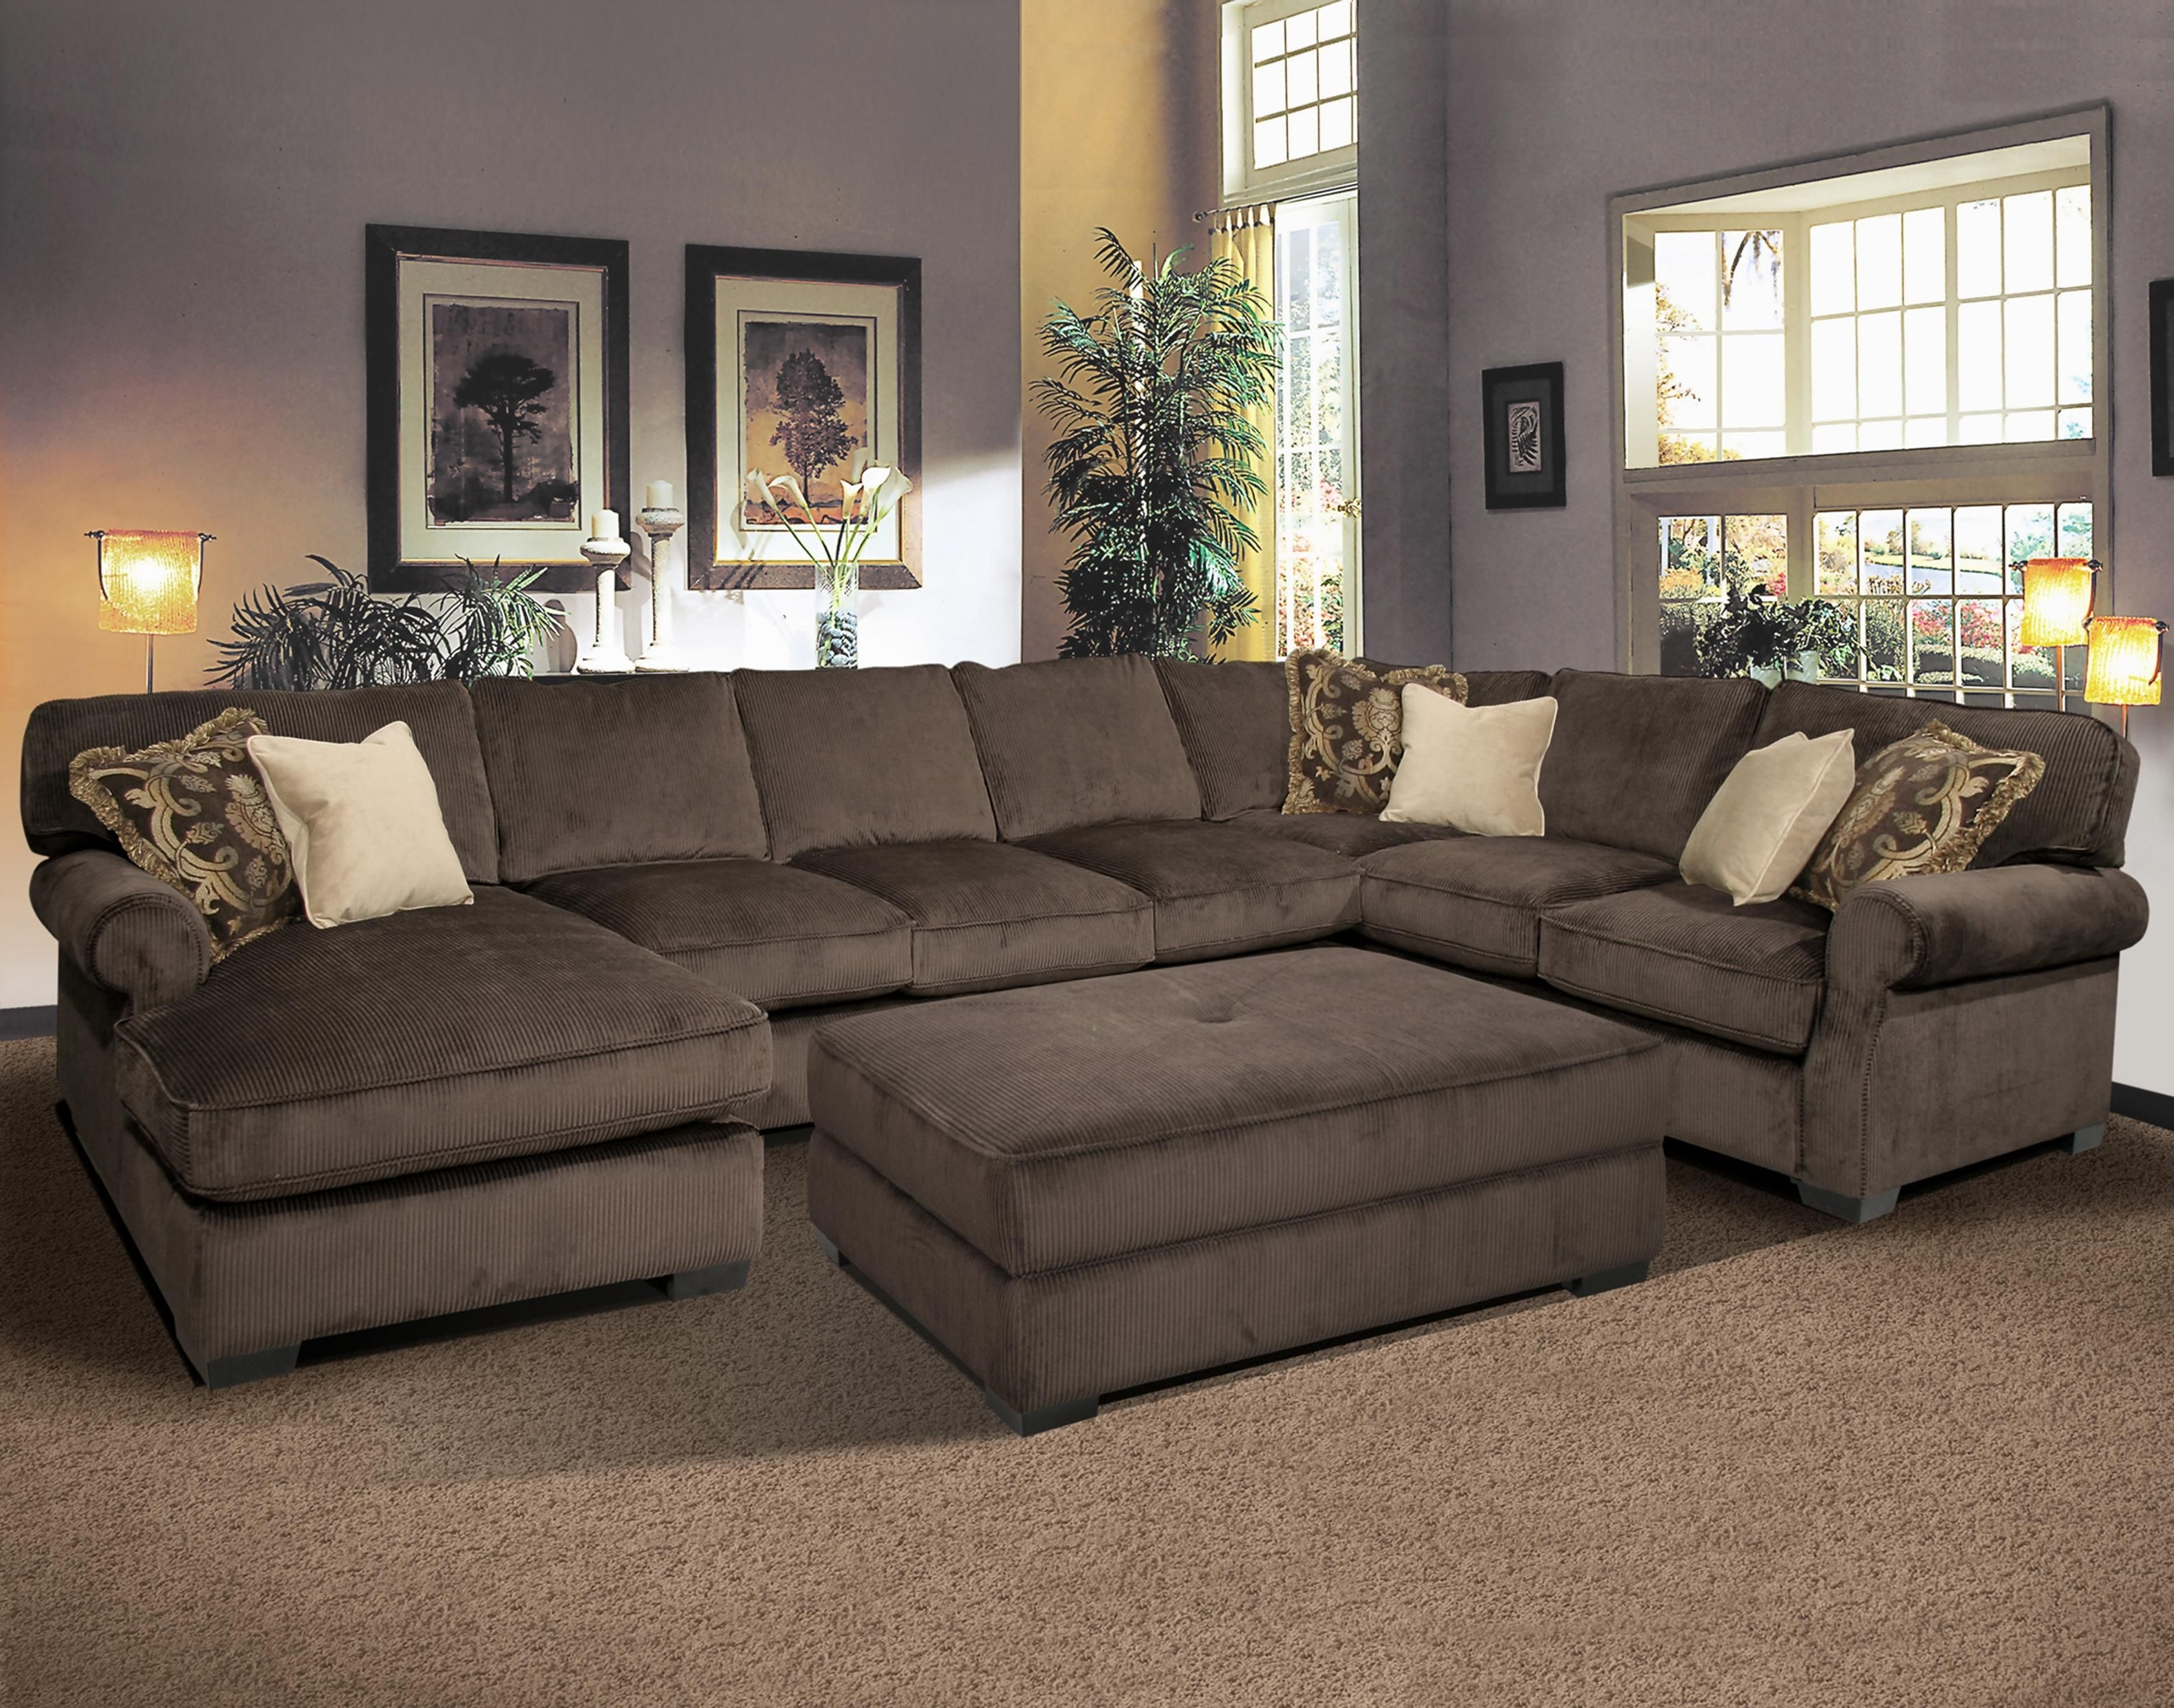 Ventura County Sectional Sofas with 2017 Massive Sectional Featuring An Extra Deep Seat With Crowned